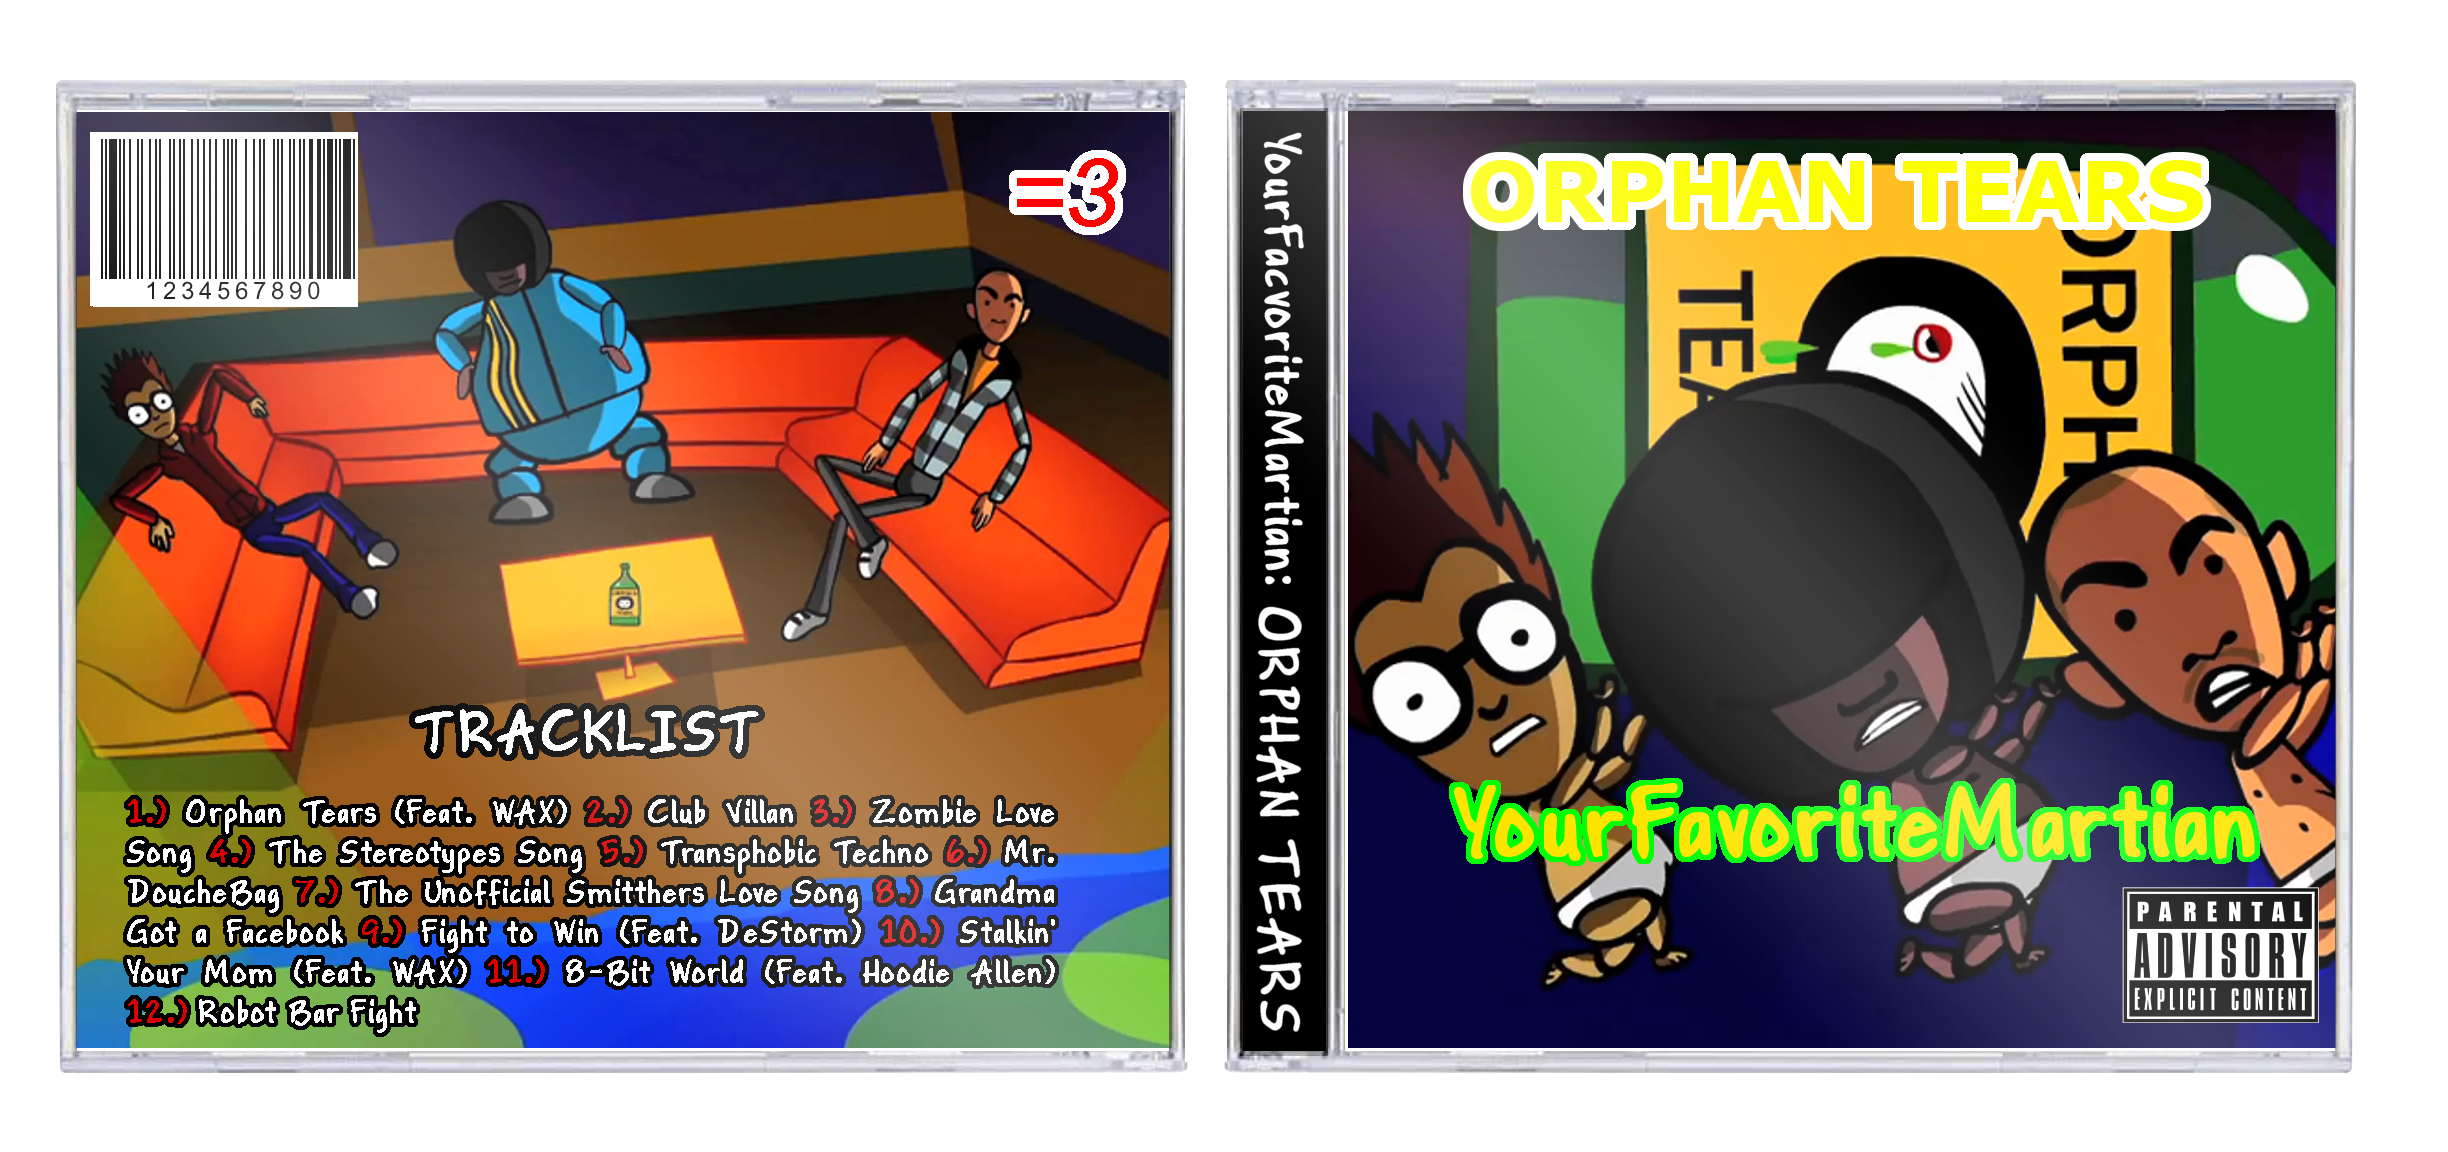 YourFavoriteMartian - ORPHAN TEARS box cover